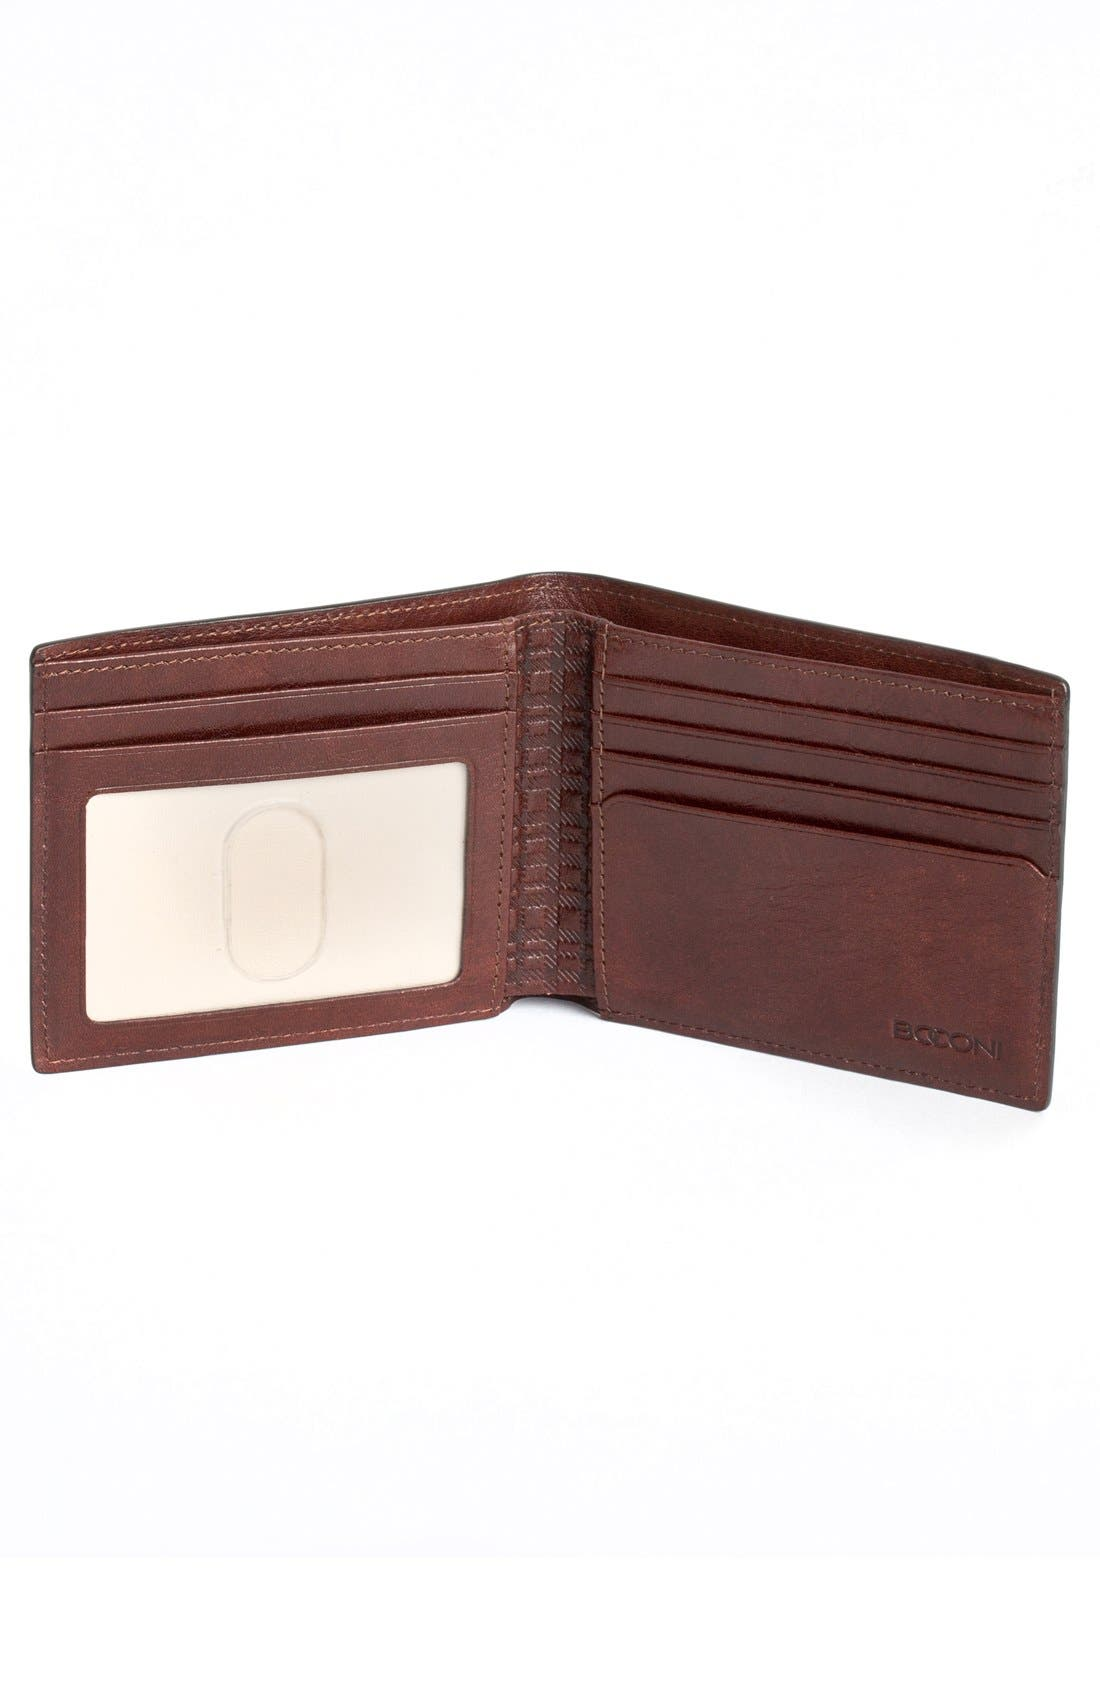 'Becker' Leather Wallet,                             Alternate thumbnail 2, color,                             Whiskey